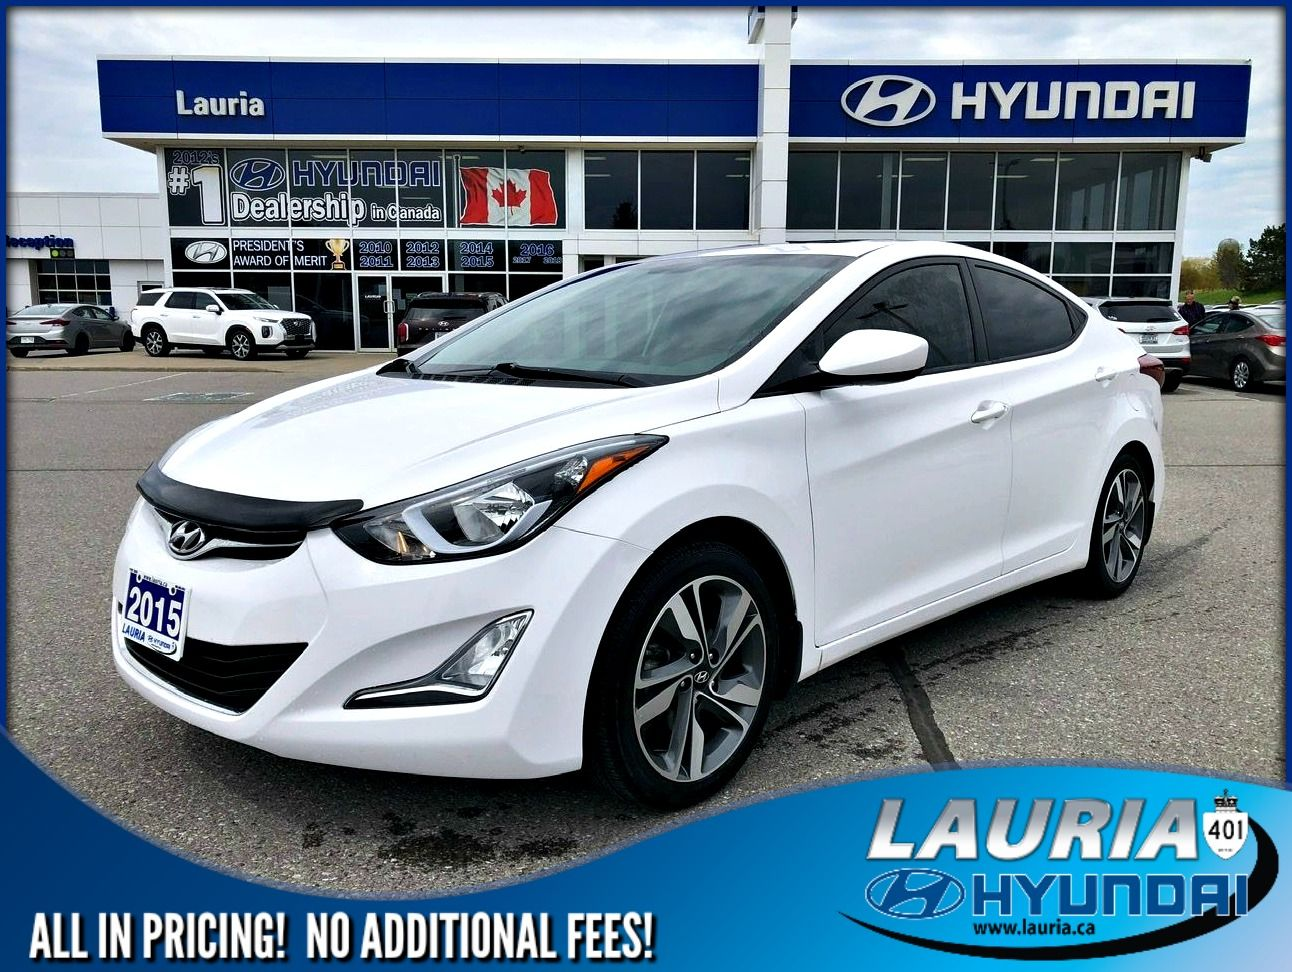 Pre-Owned 2015 Hyundai Elantra GLS Auto - LOW KMS